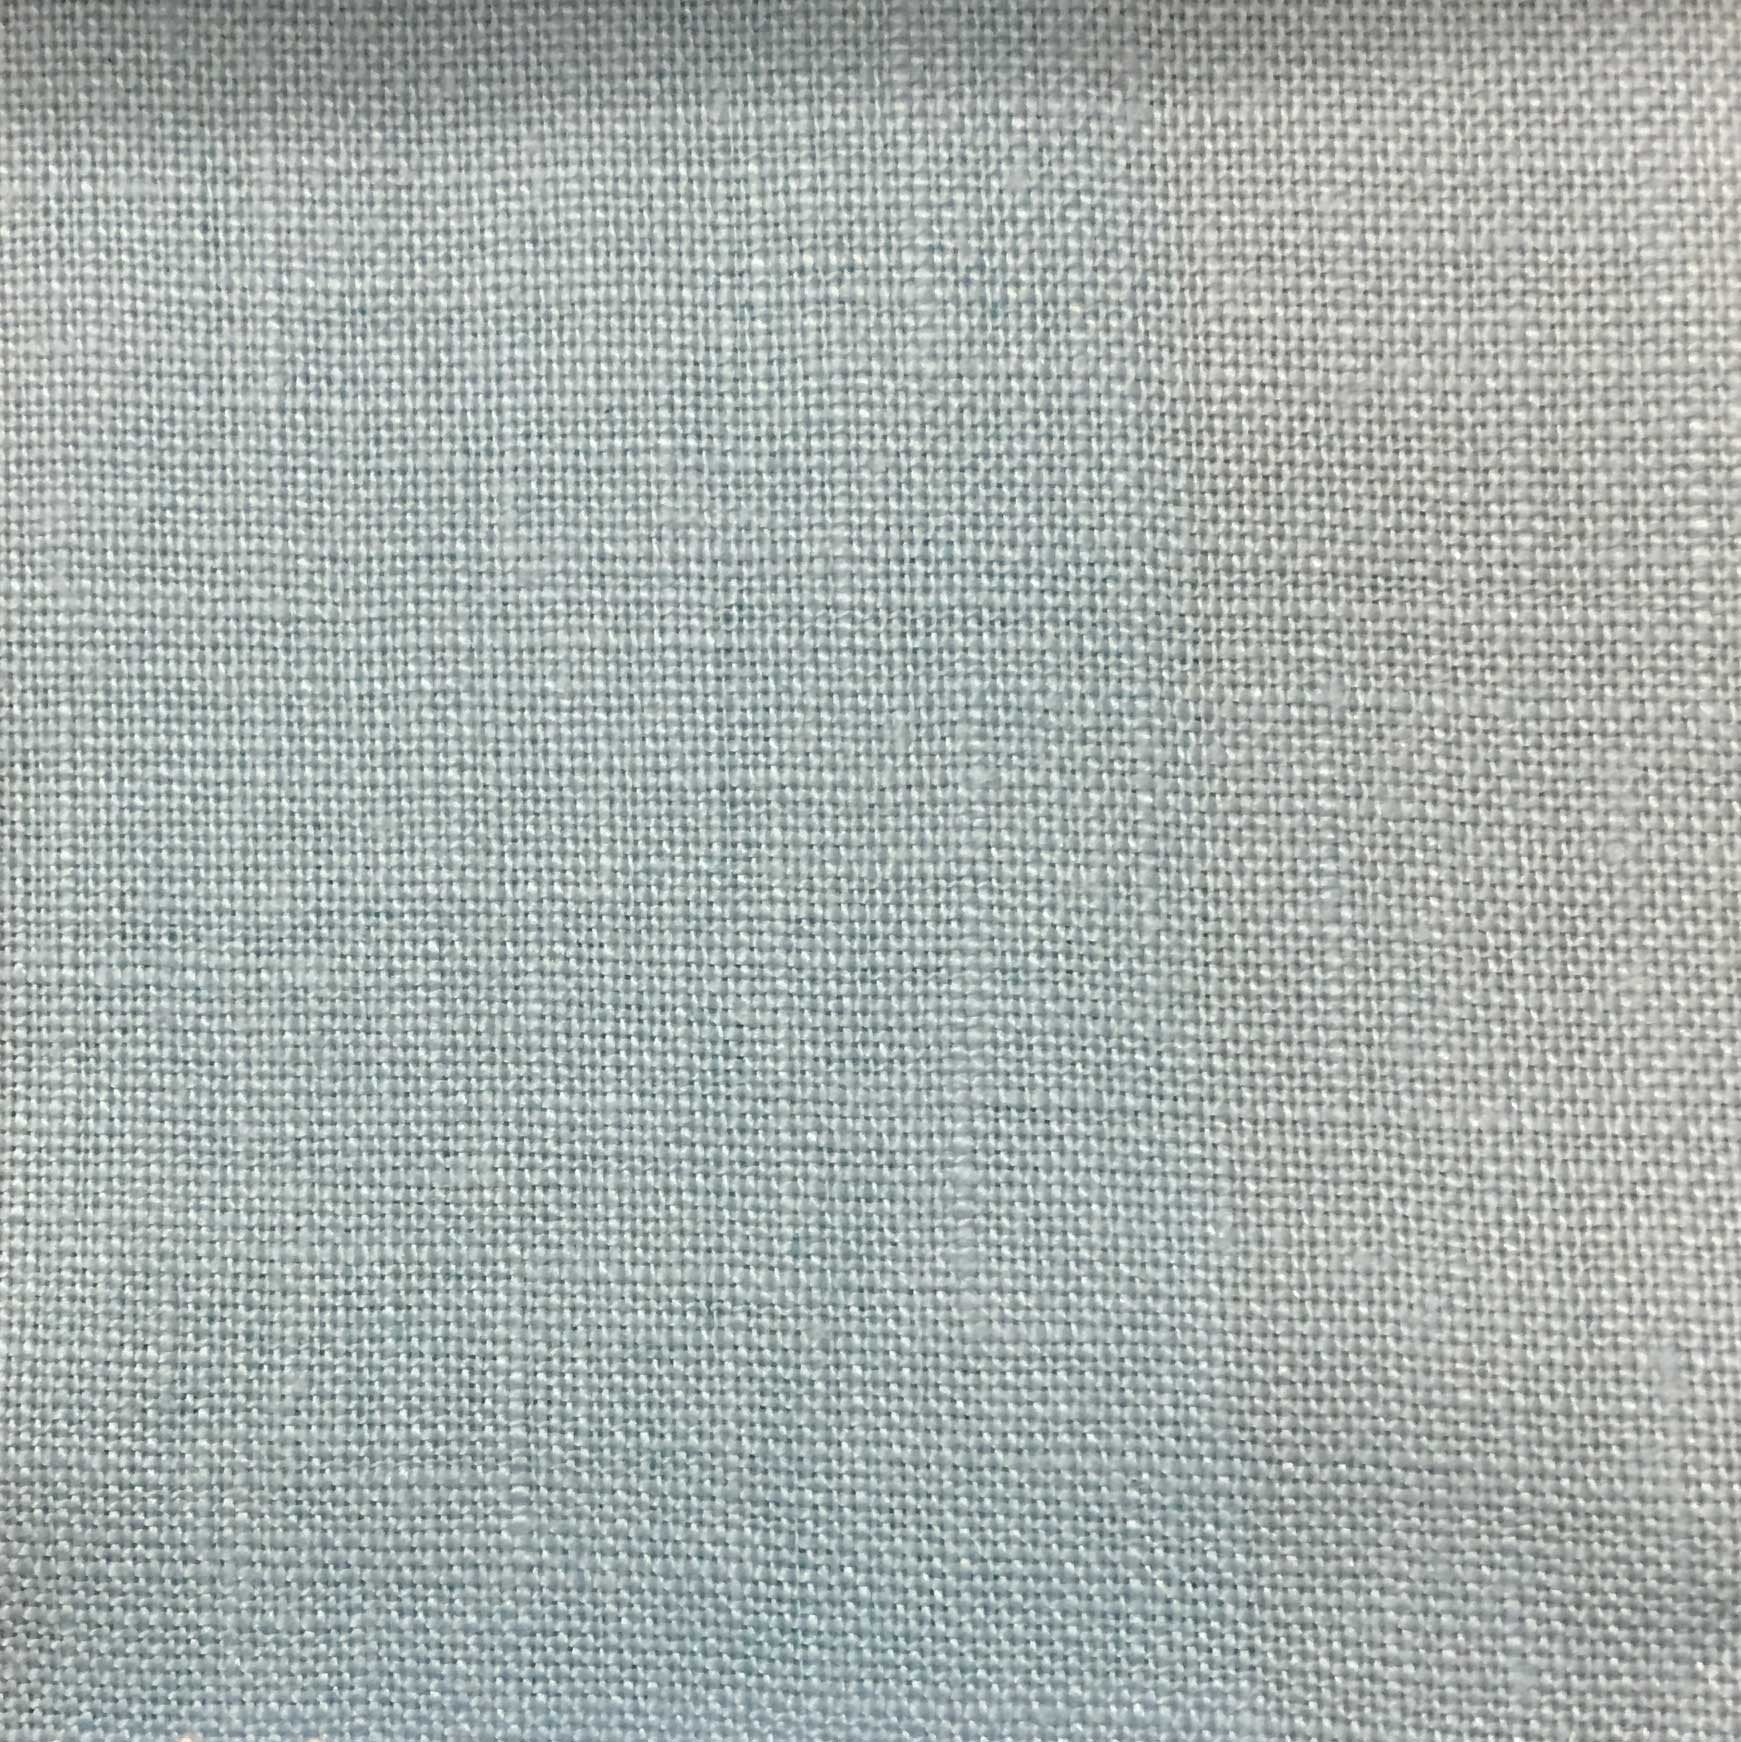 Brighton - 100% Linen Fabric Curtain & Drapery Fabric by the Yard